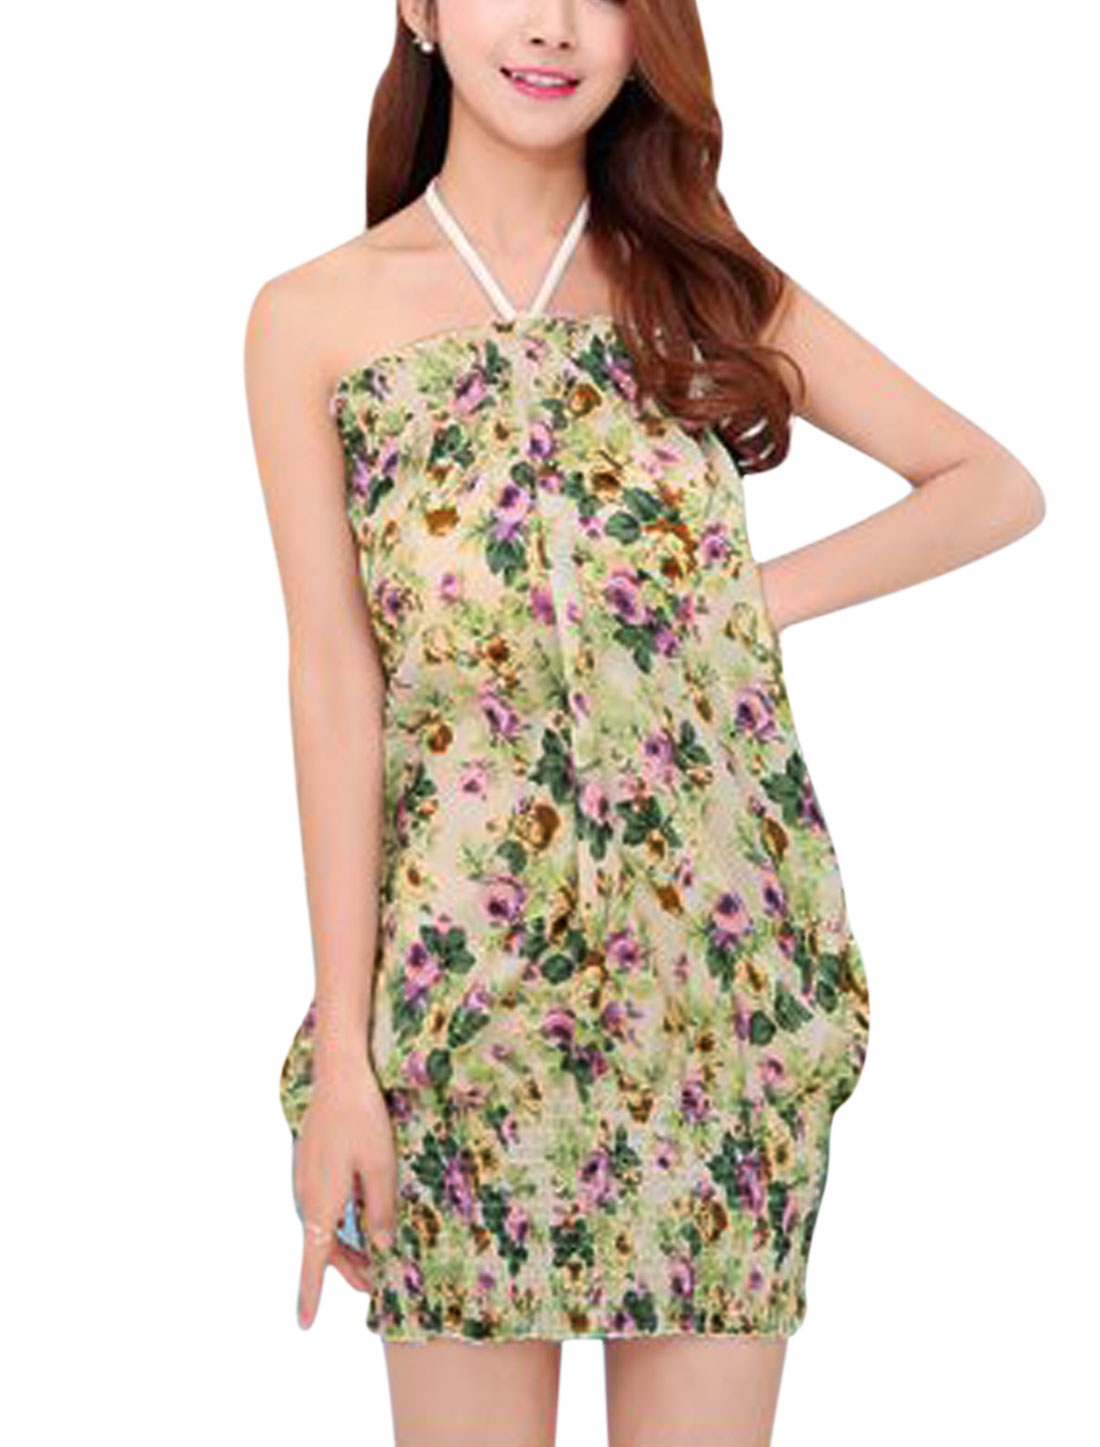 Women Halter Neck Flower Prints Unlined Sleeveless Sundress Green S